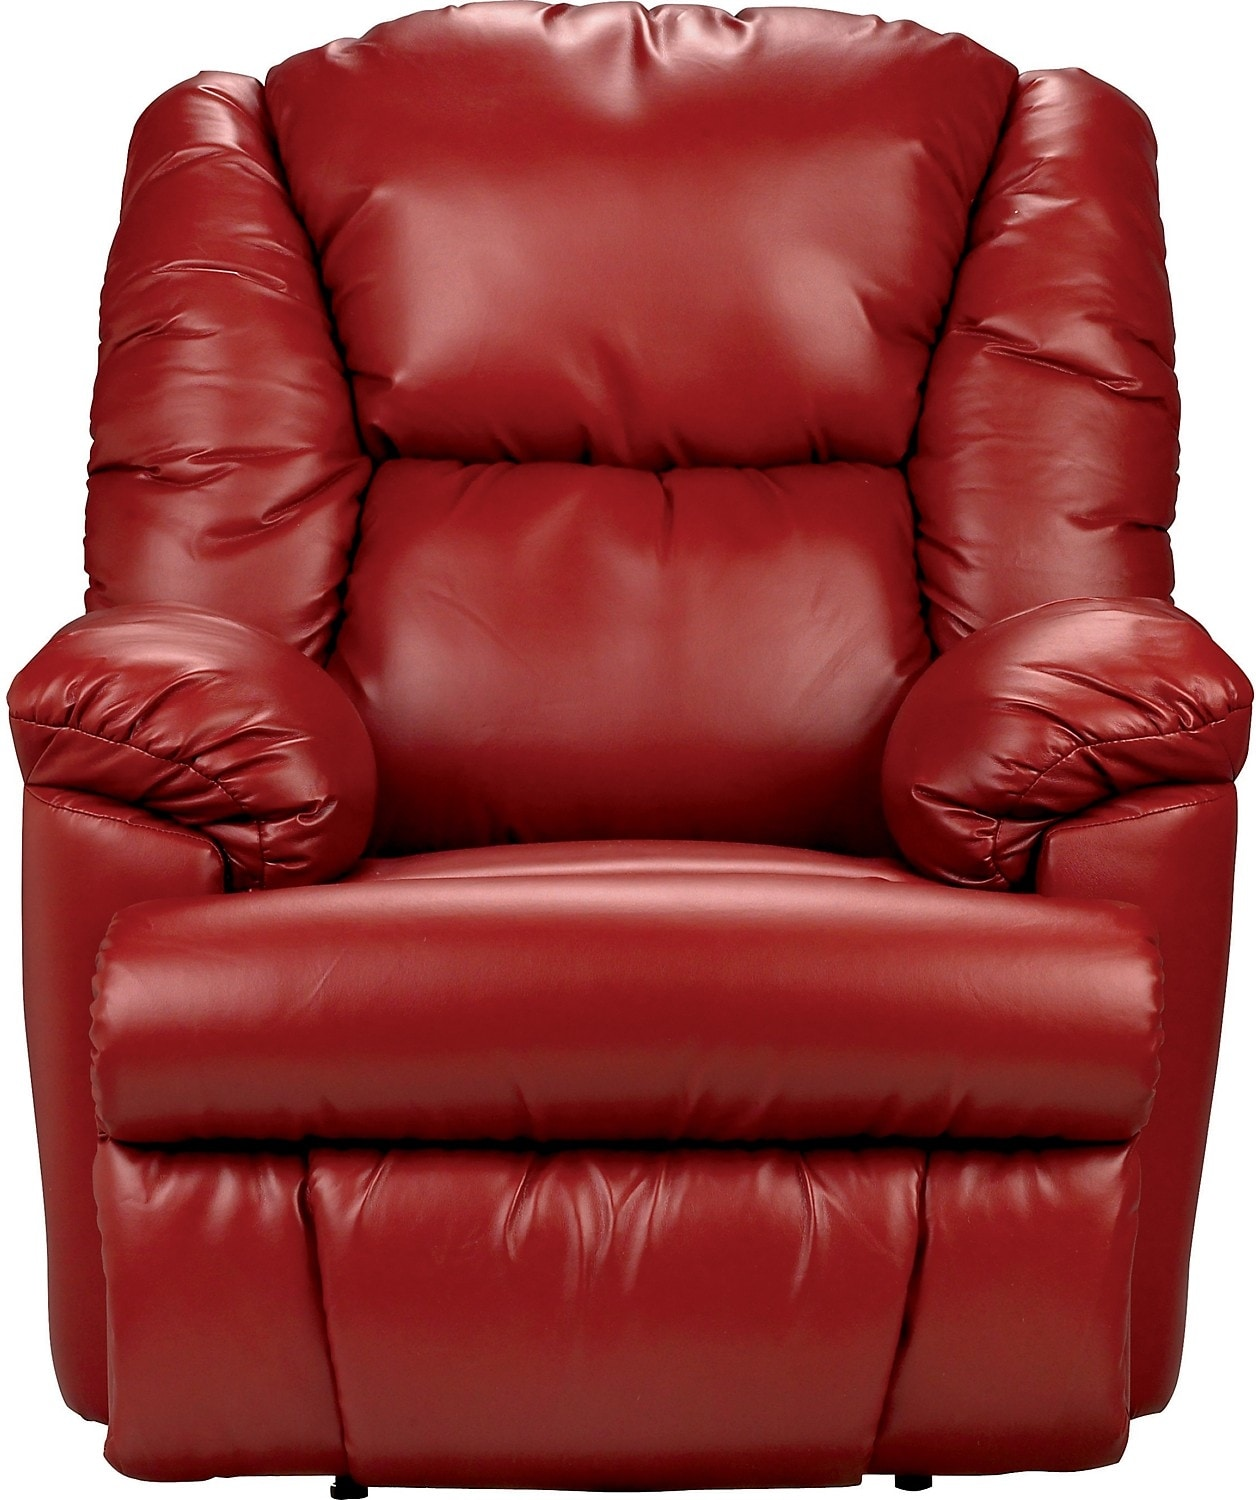 Living Room Furniture - Bmaxx Bonded Leather Power Reclining Chair – Red